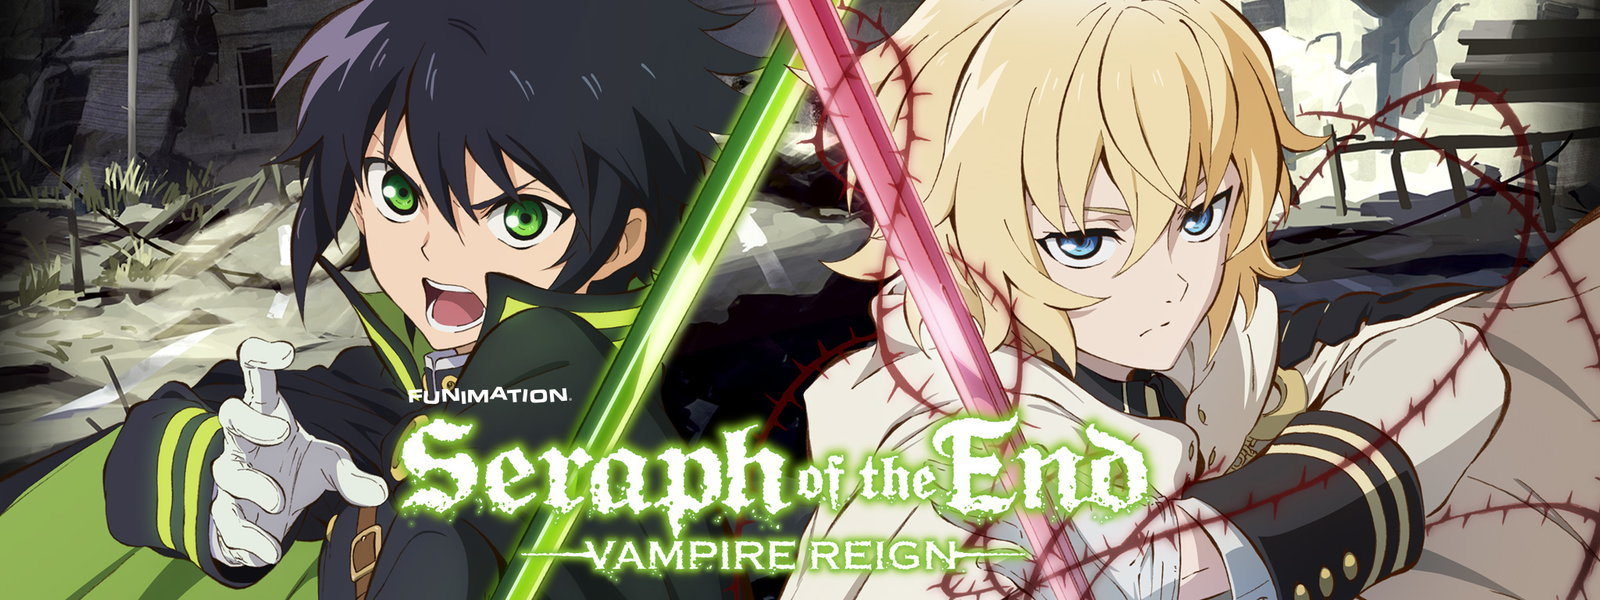 blu ray set review seraph of the end the geekly grind